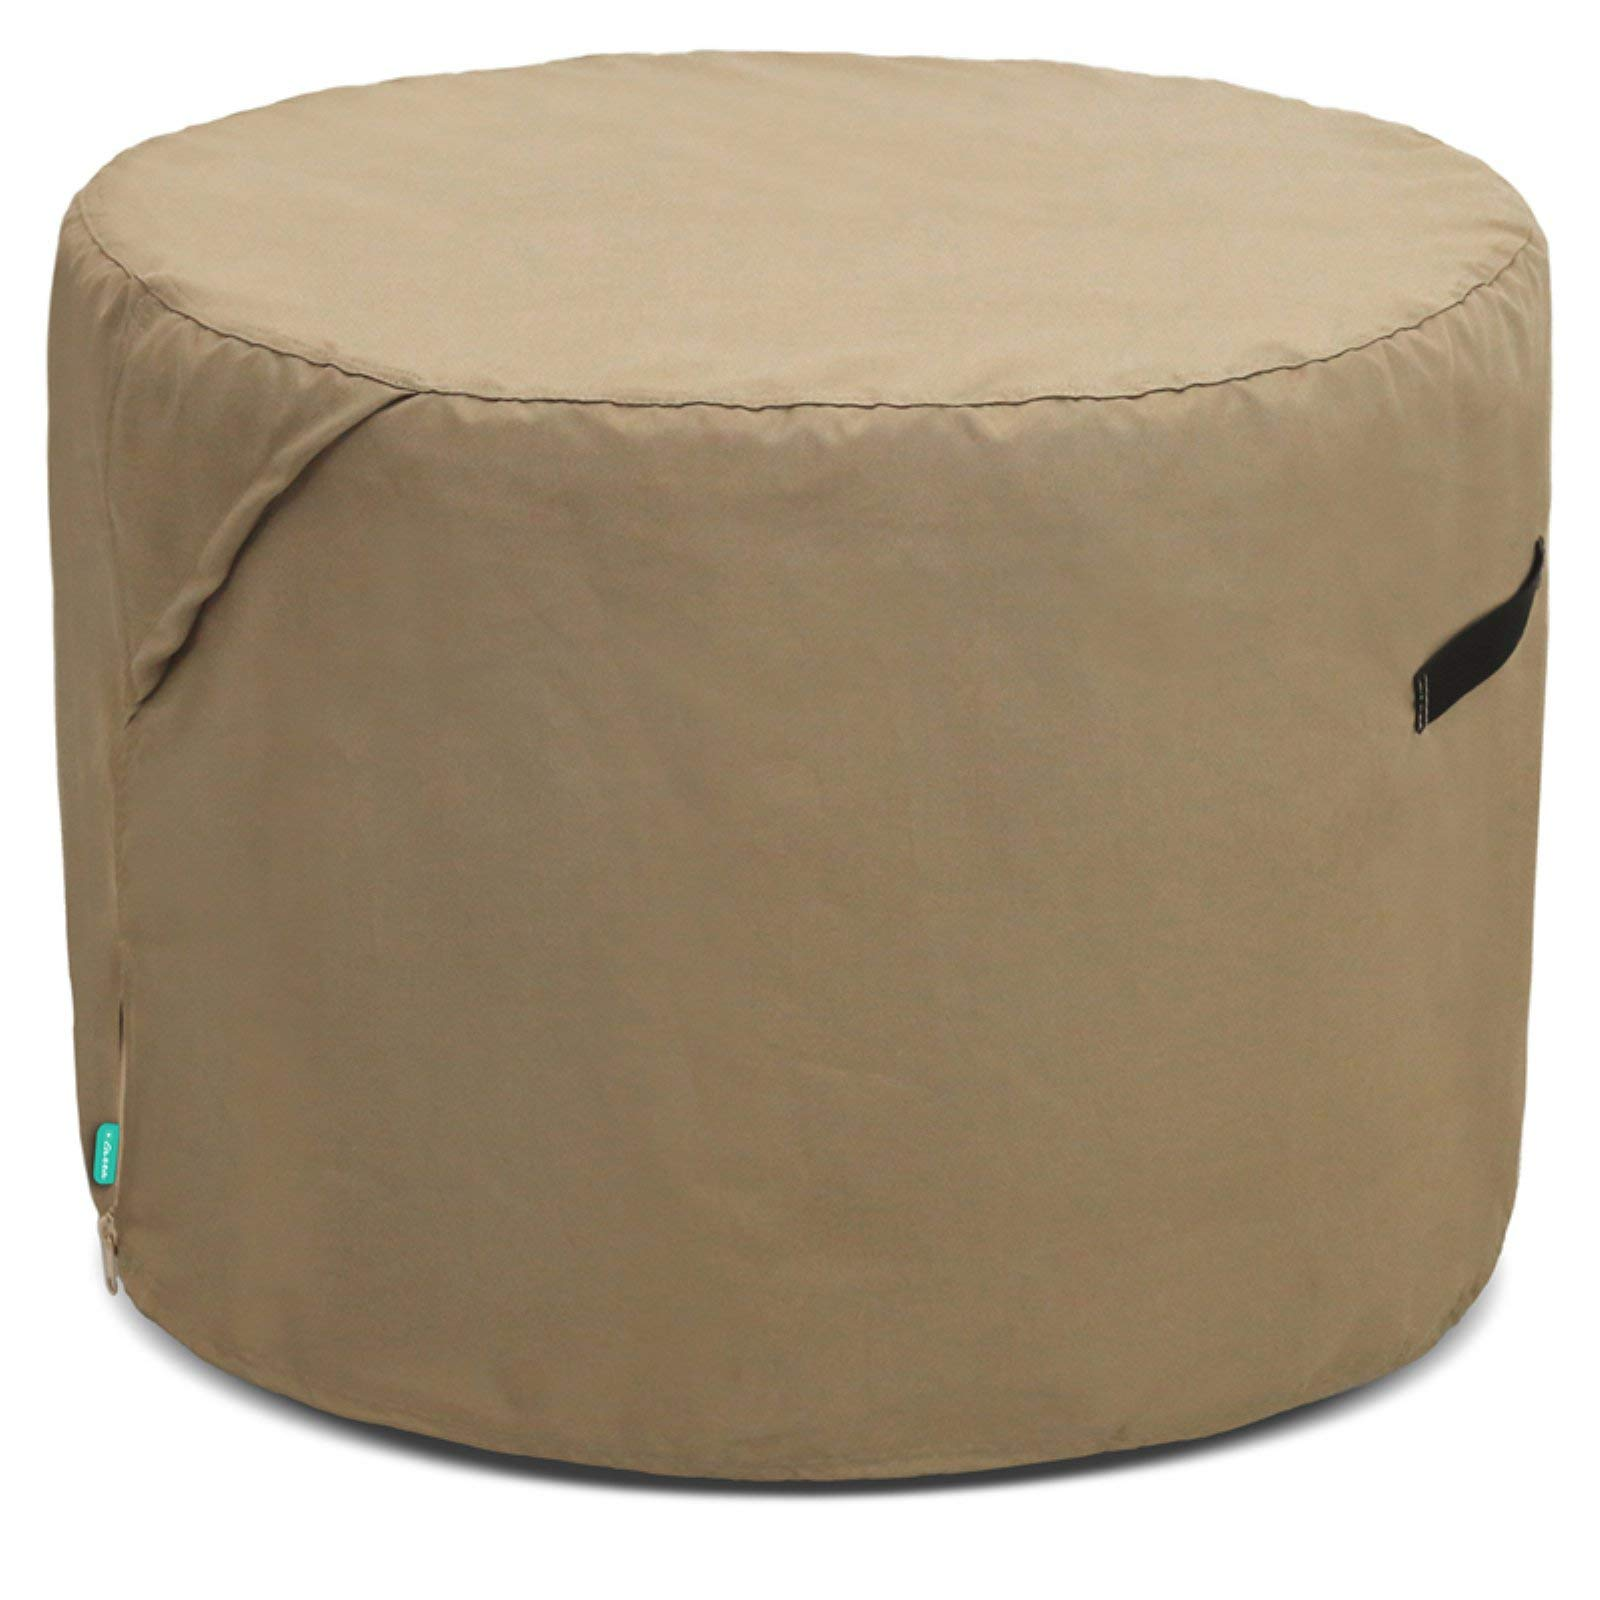 OKSLO Universal outdoor ufcoz2625pt patio round ottoman cover